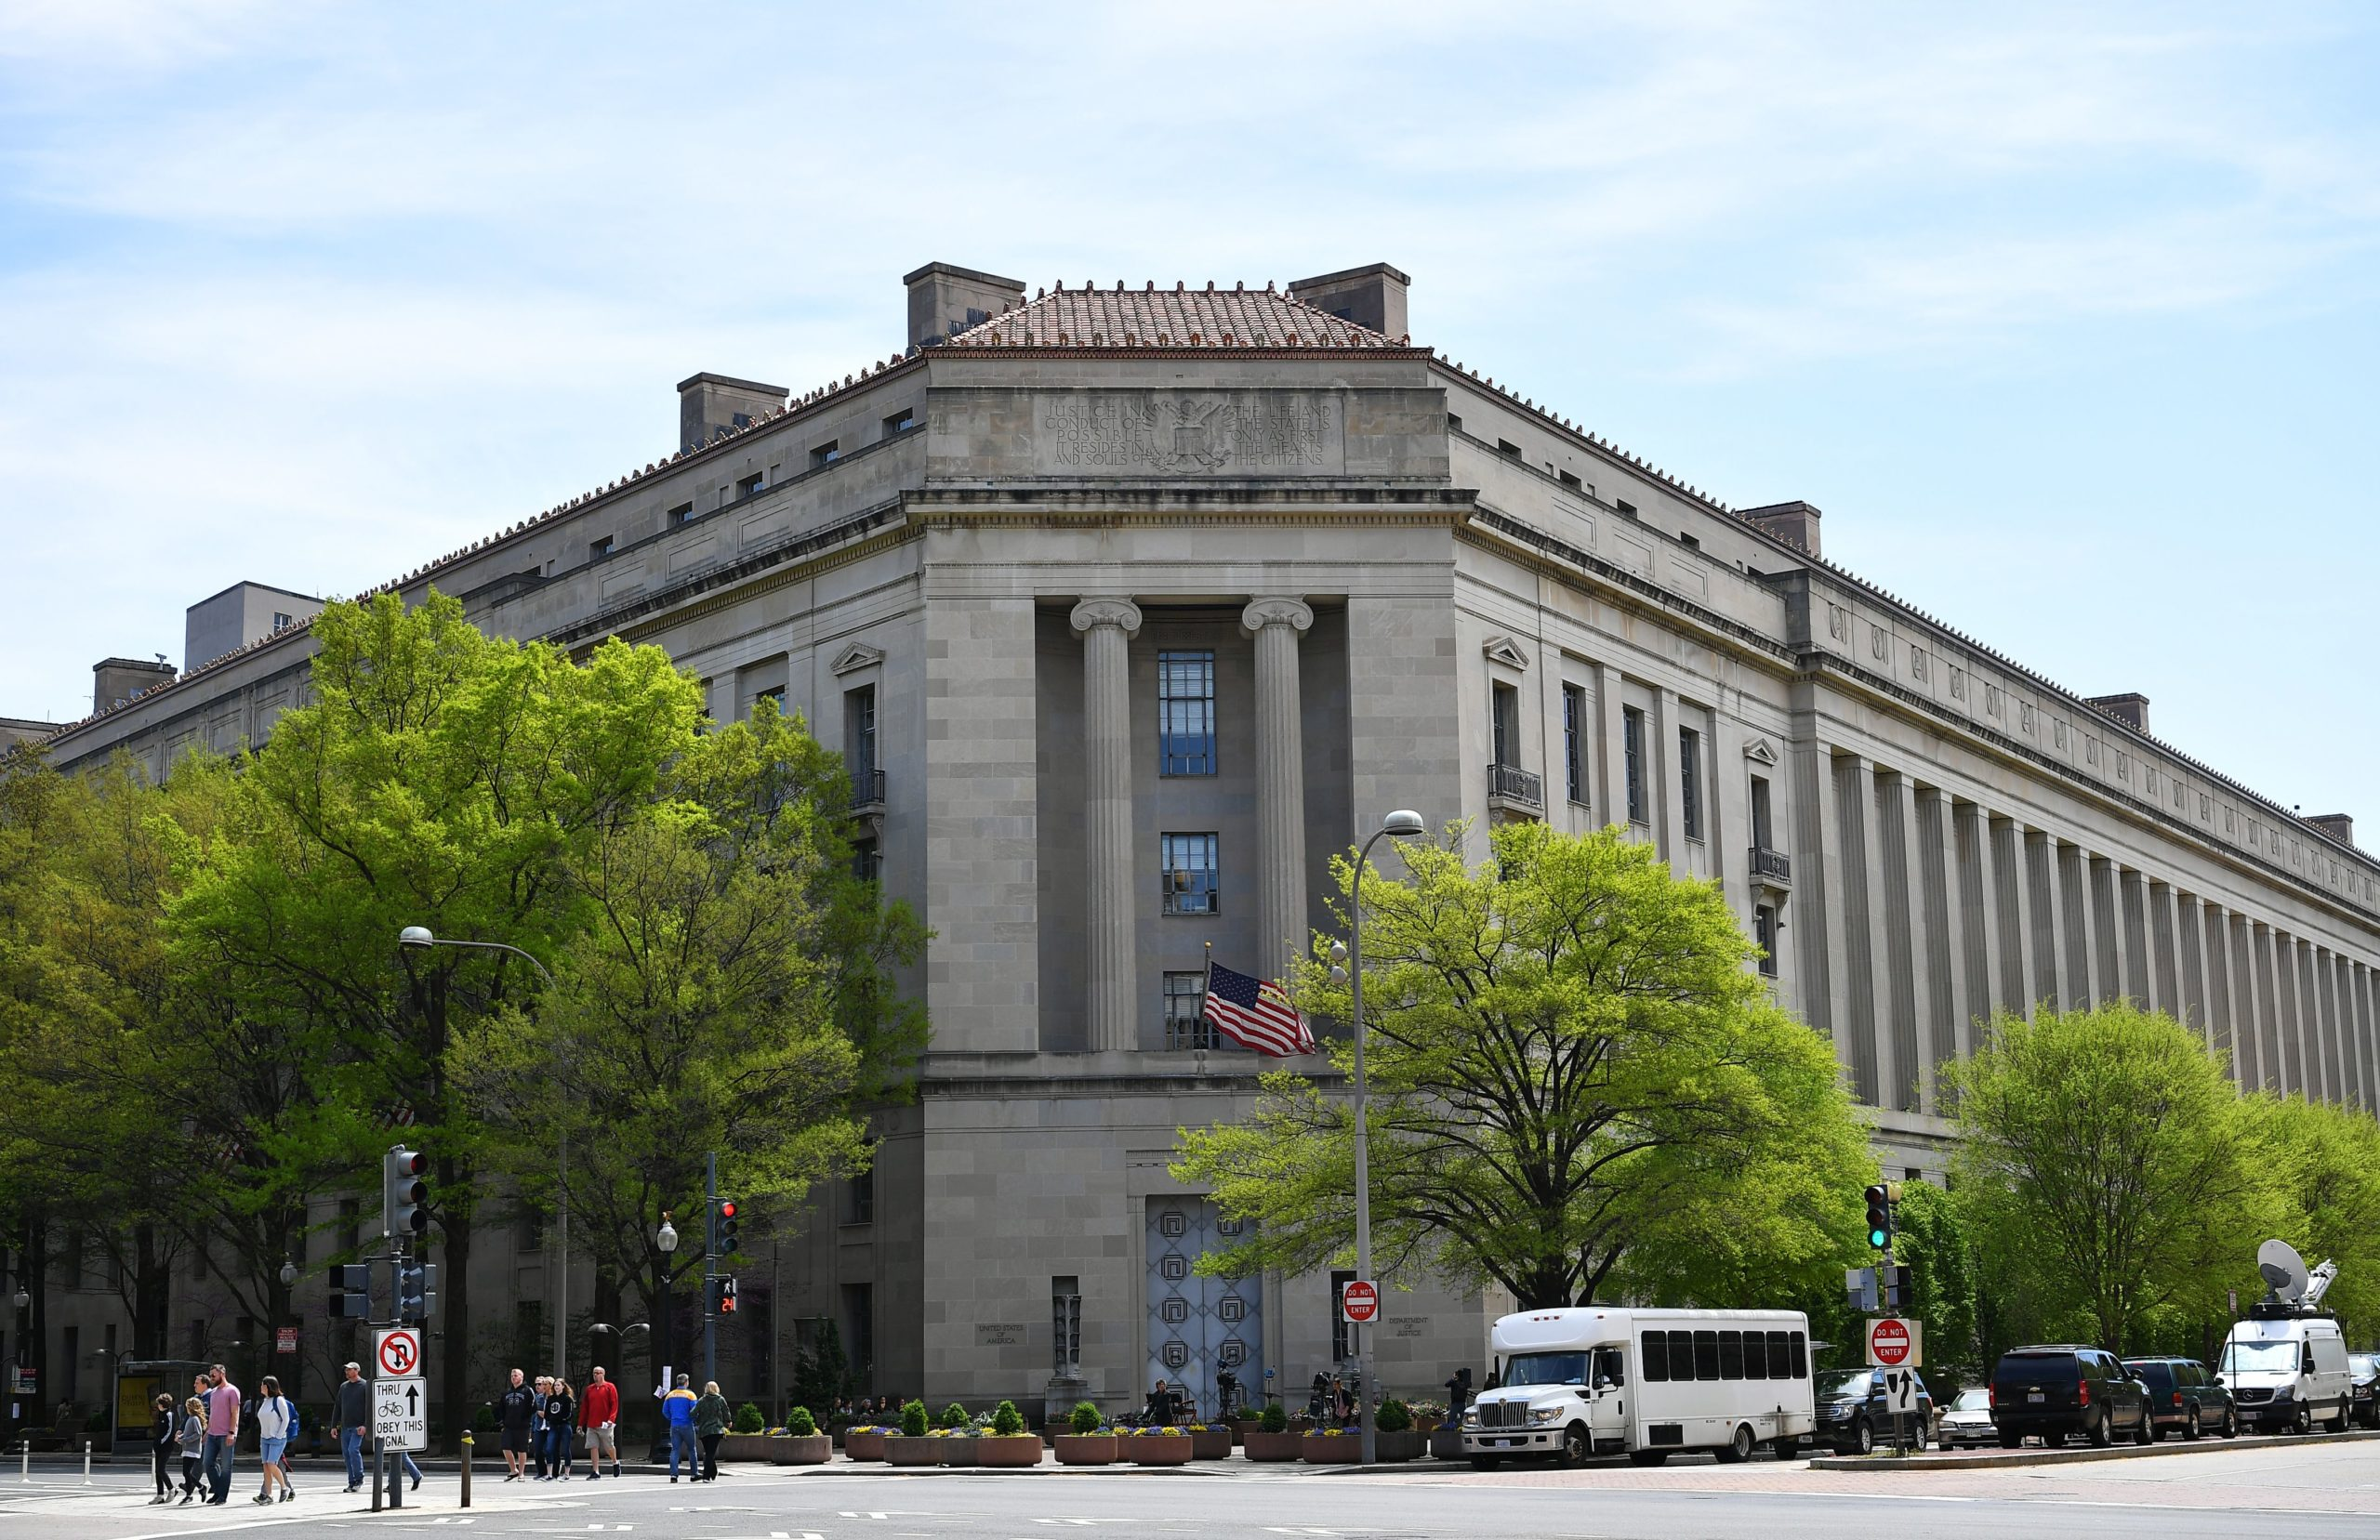 An April 16, 2019 photo shows the Department of Justice in Washington, DC. - A redacted version of special counsel Robert Mueller's report into Russian meddling in the US election will be released on April 18, 2019, the Justice Department said as President Donald Trump again lashed out at the most politically explosive probe in modern US history. The report could feature allegations that Trump tried to obstruct the investigation, although Attorney General Bill Barr has said there is not sufficient evidence to establish he committed such a crime. Mueller himself has offered no conclusion on this, according to a brief summary of the report from Barr, who was handpicked by Trump. (Photo by MANDEL NGAN / AFP) (Photo by MANDEL NGAN/AFP via Getty Images)